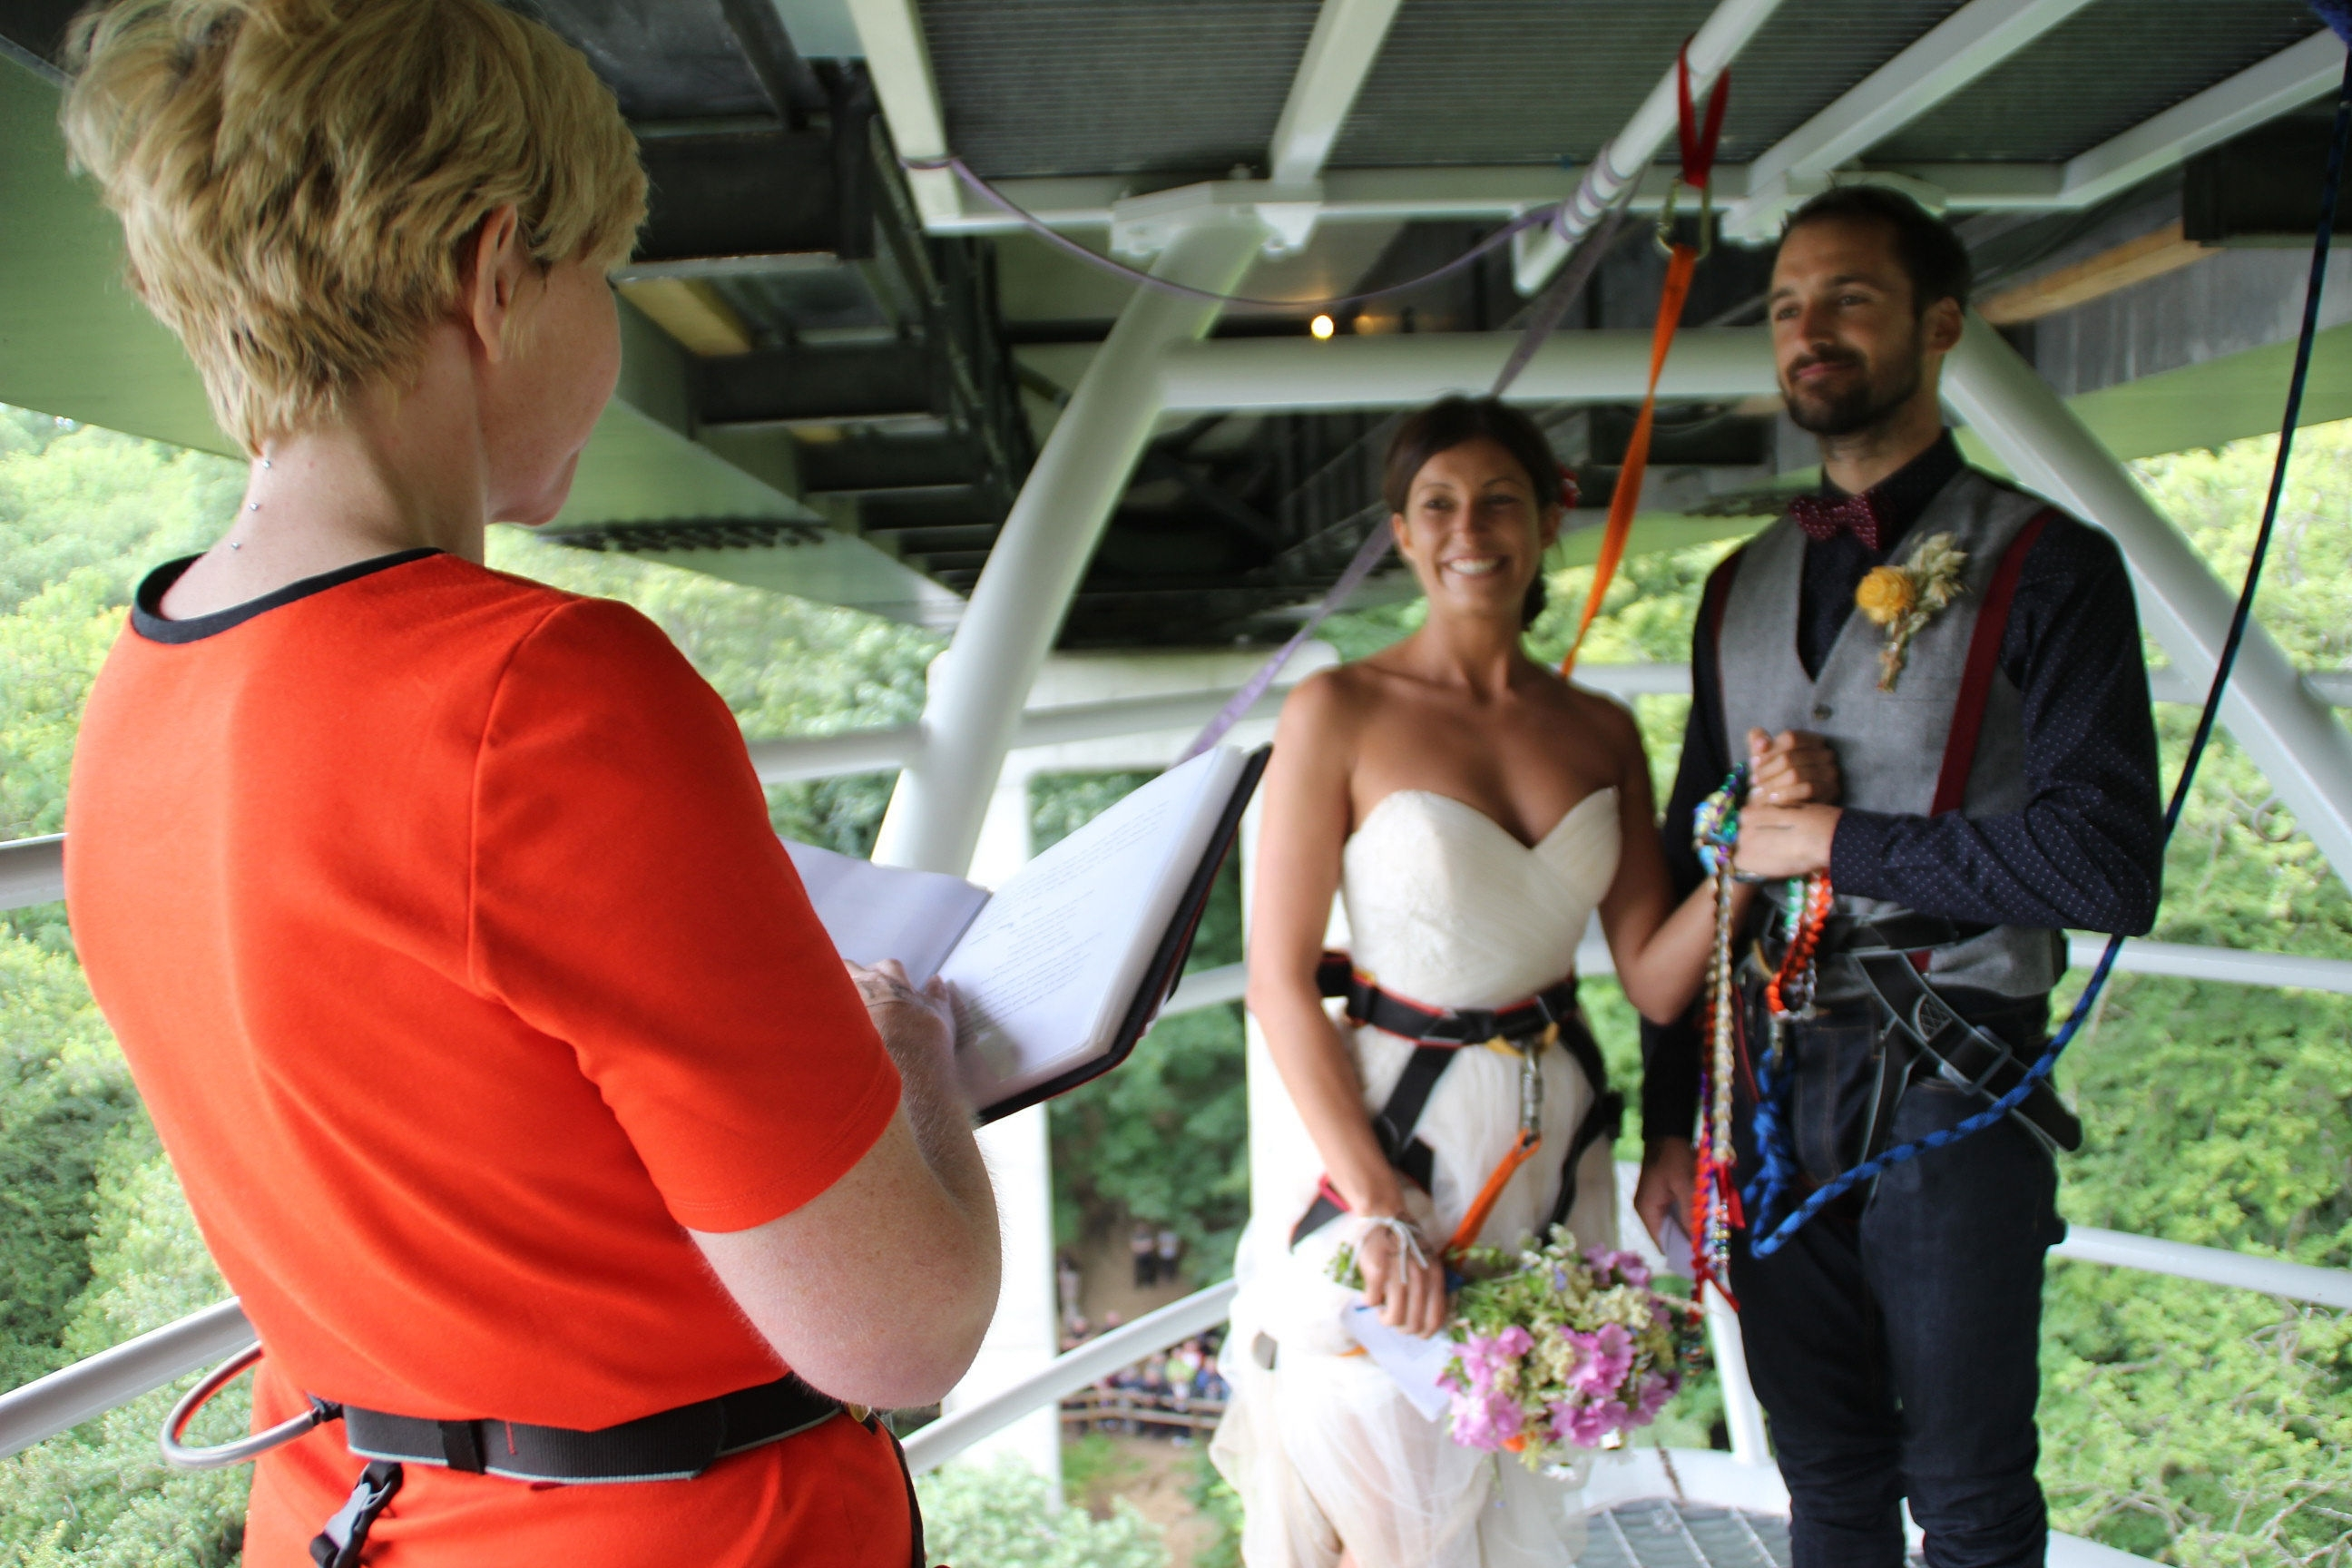 Undated handout photo issued by Highland Fling Bungee of Ross Basham, 33, and Hannah Phillips, 27, who jump-started married life by holding their wedding on a bungee jump platform and then leapt 40 metres on the same cord at Garry Bridge near Killiecrankie in Perthshire. PRESS ASSOCIATION Photo. Issue date: Thursday August 6, 2015. It is thought to be the first wedding of its kind to be conducted in Scotland, with the vows legally witnessed by the company's jump crew who were wearing traditional highland dress. See PA story SOCIAL Bungee. Photo credit should read: Highland Fling Bungee/PA Wire NOTE TO EDITORS: This handout photo may only be used in for editorial reporting purposes for the contemporaneous illustration of events, things or the people in the image or facts mentioned in the caption. Reuse of the picture may require further permission from the copyright holder.